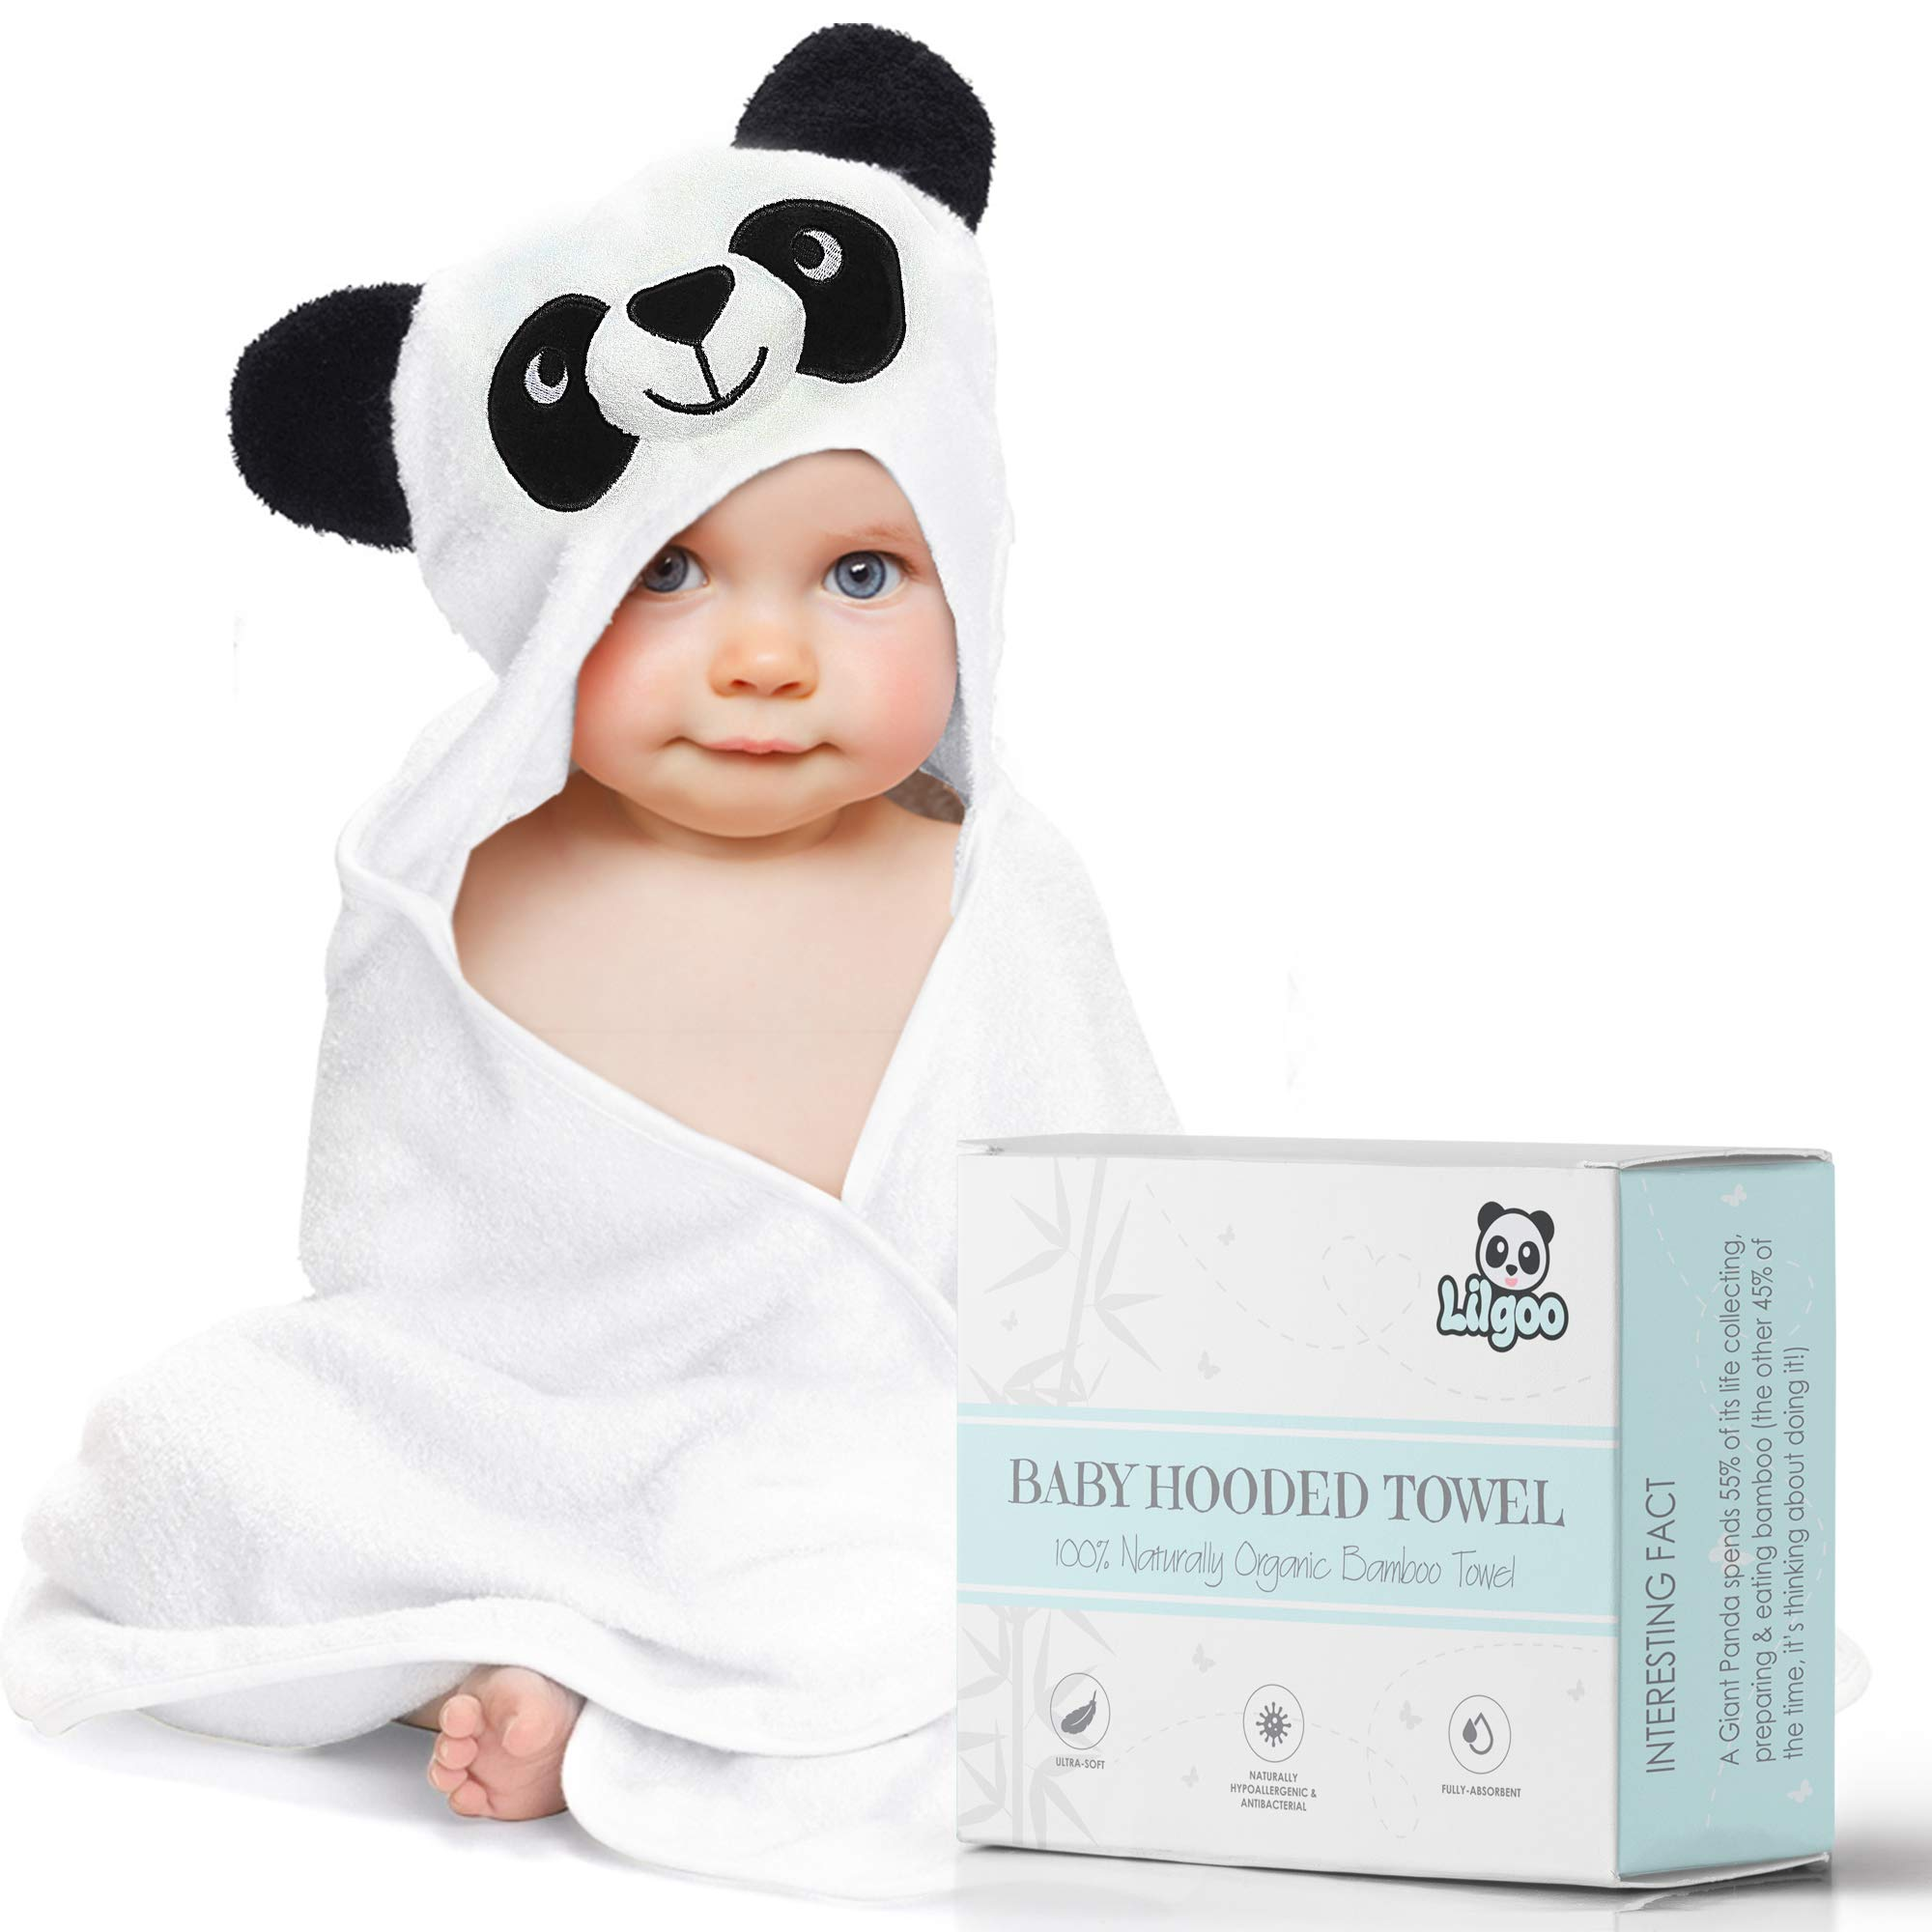 Premium Organic Bamboo Hooded Baby Towel - Large, Soft Panda Bath Robe for Boy or Girl - Perfect Shower Gift - Sized for Babies, Newborns, Infants, Toddlers & Kids - Super Absorbent and Hypoallergenic